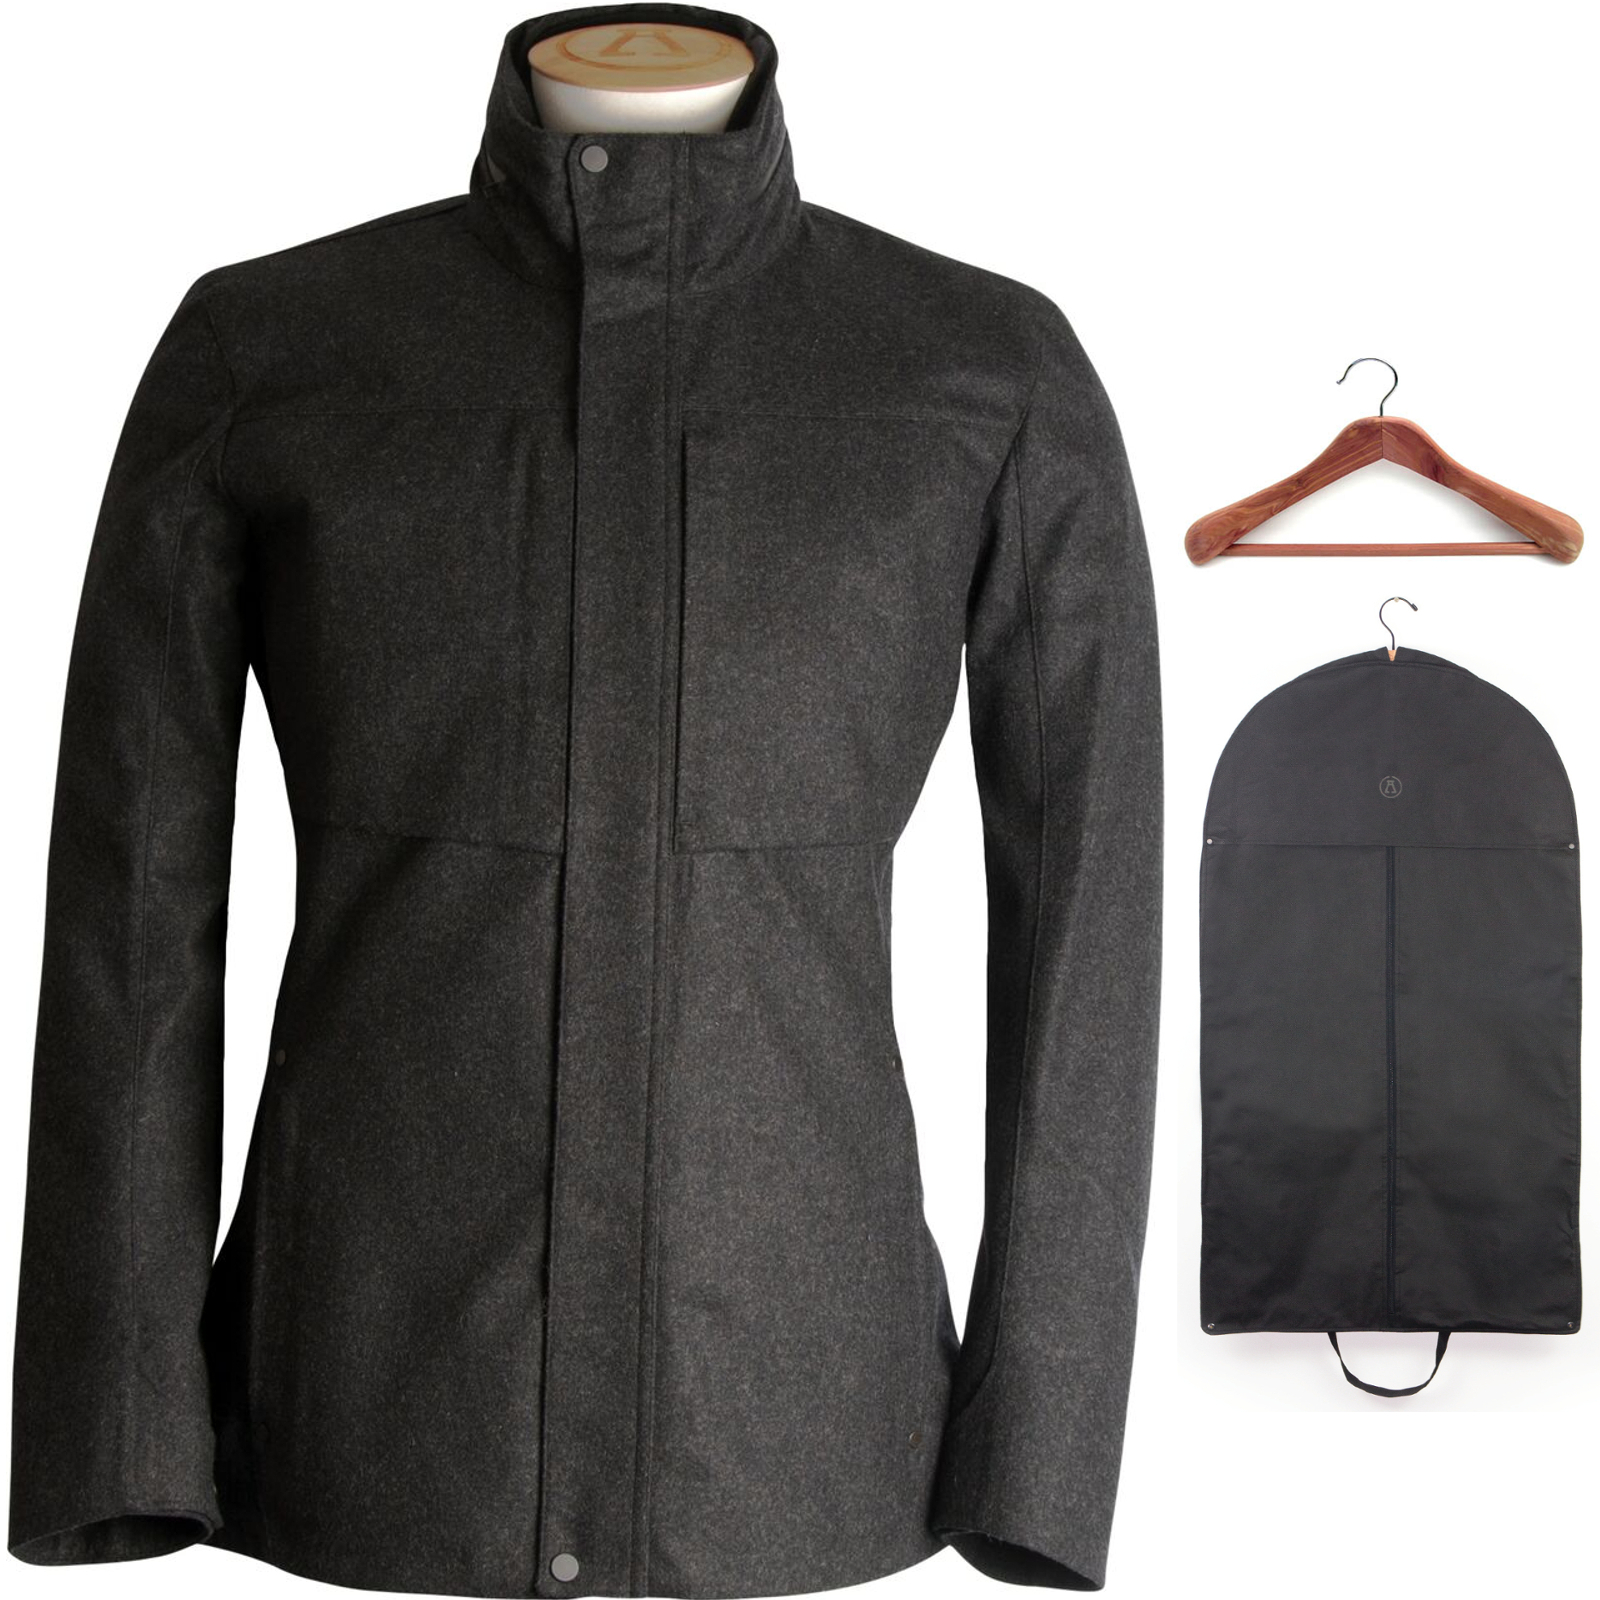 Alchemy Equipment Laminated Wool Jacket